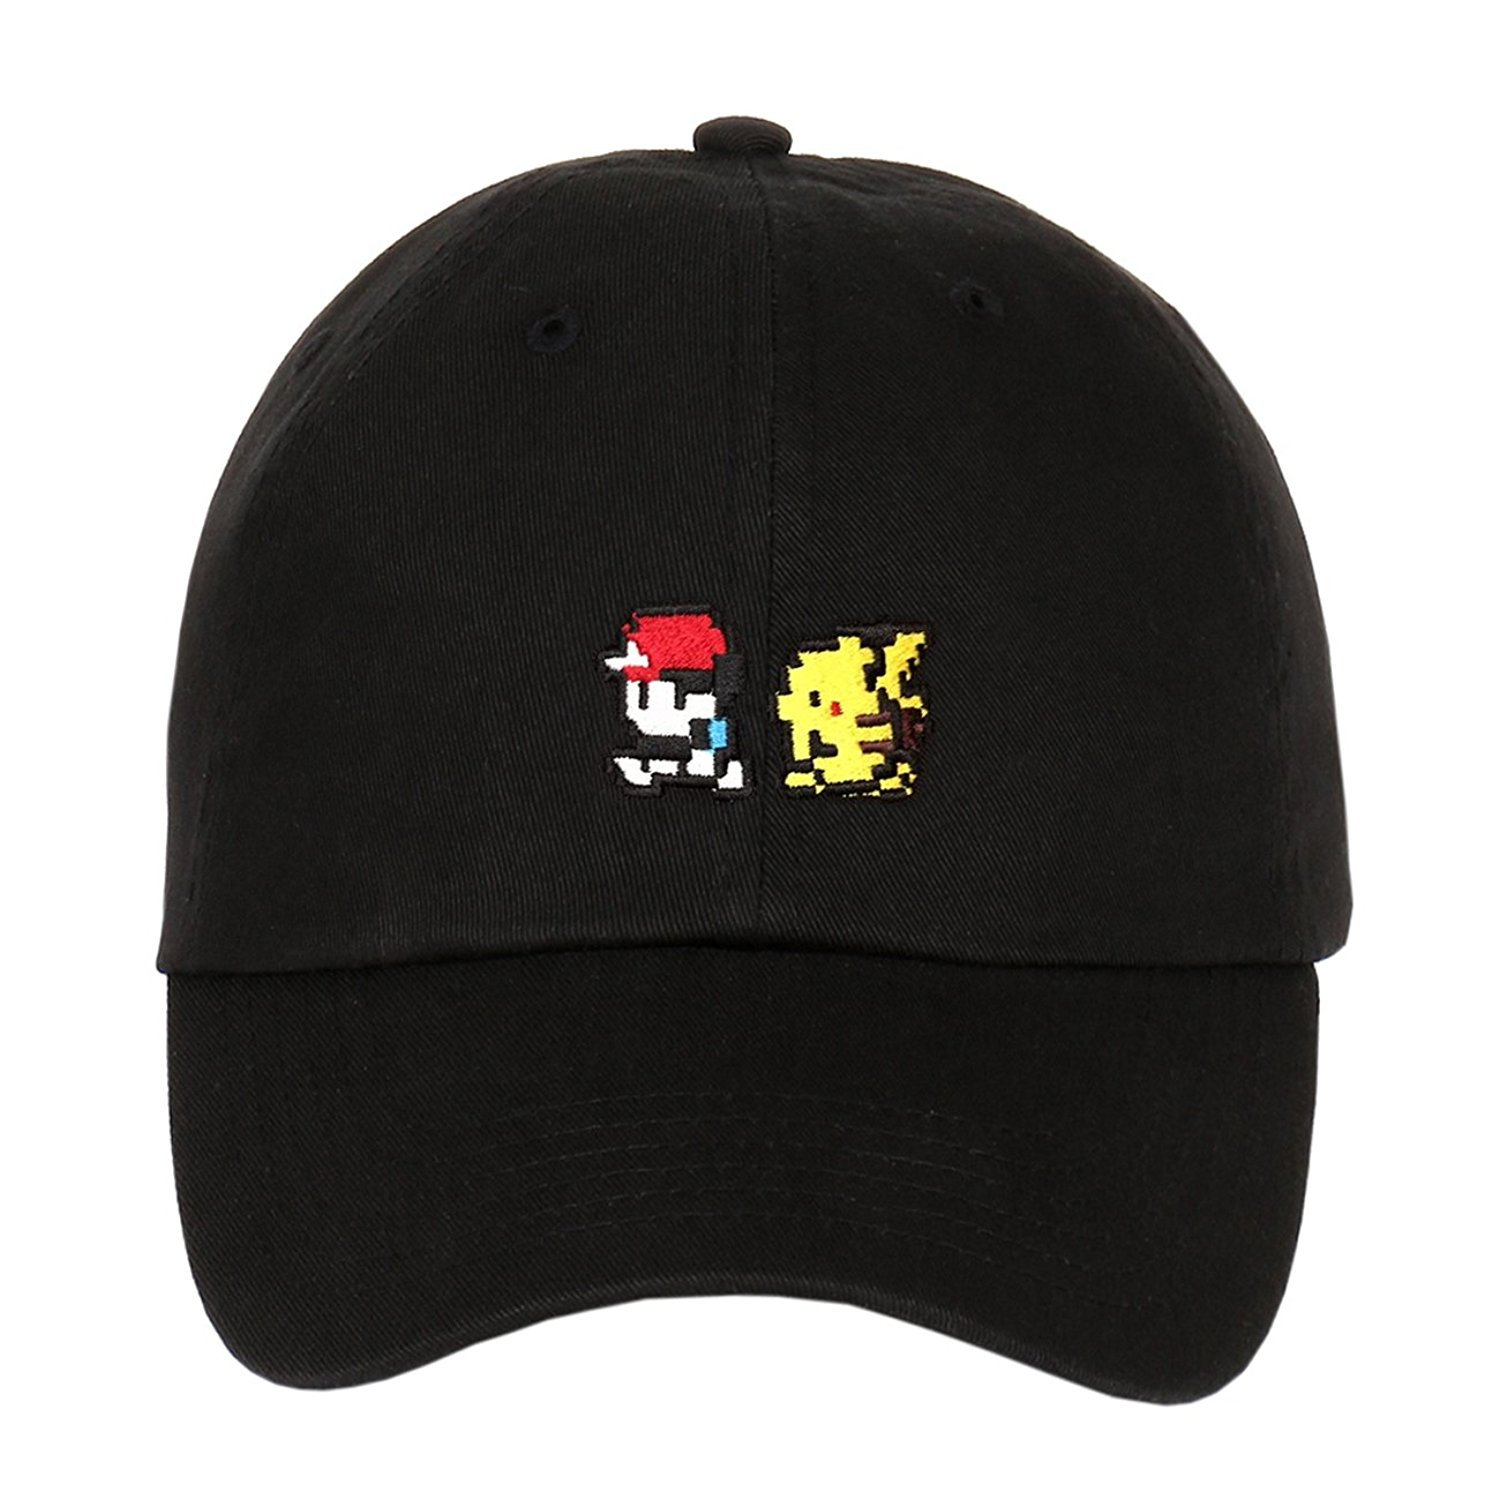 29b5844514b Embroidered Mini Logos on Unstructured Low Profile Baseball Dad Cap on  Storenvy